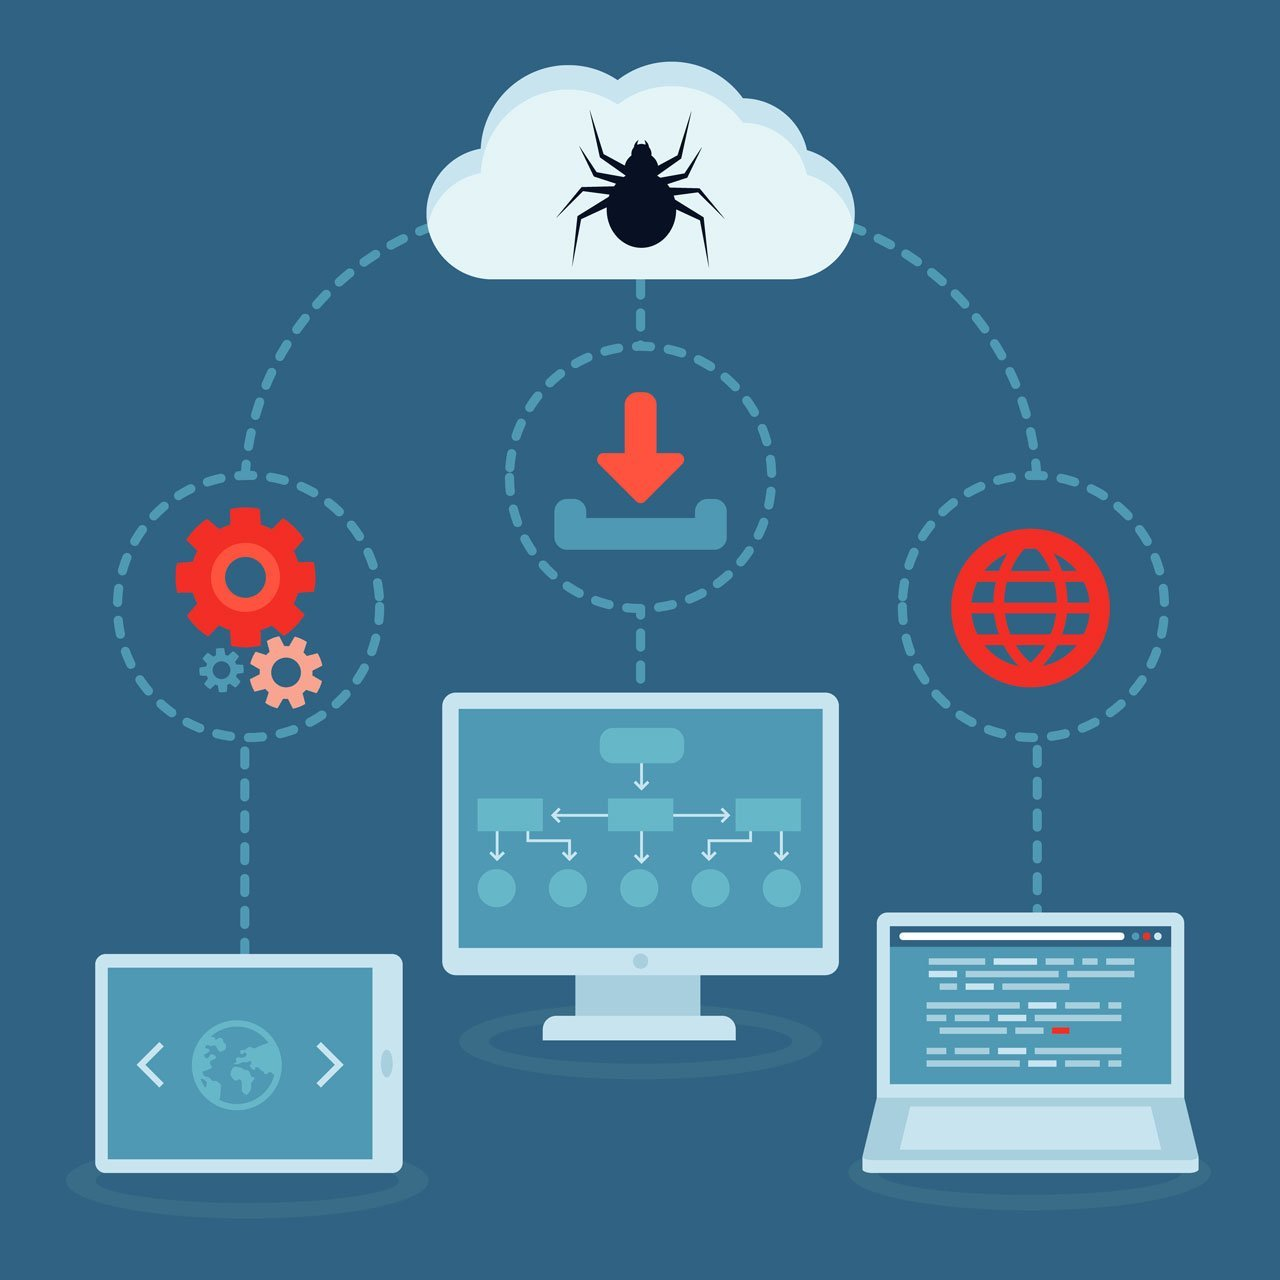 What are Spyware and Adware?